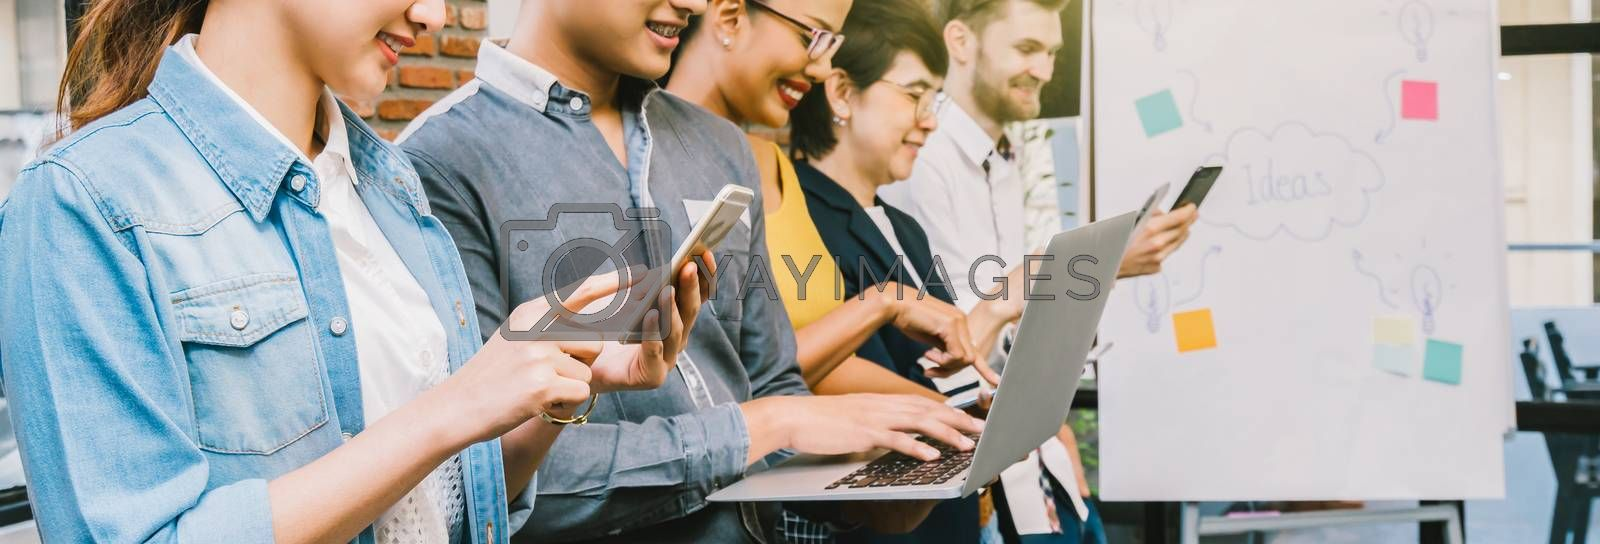 Banner and web page or cover template of Group Of Asian and Multiethnic Business people with casual suit using the technology mobile, tablet, laptop and computer for working in modern Office